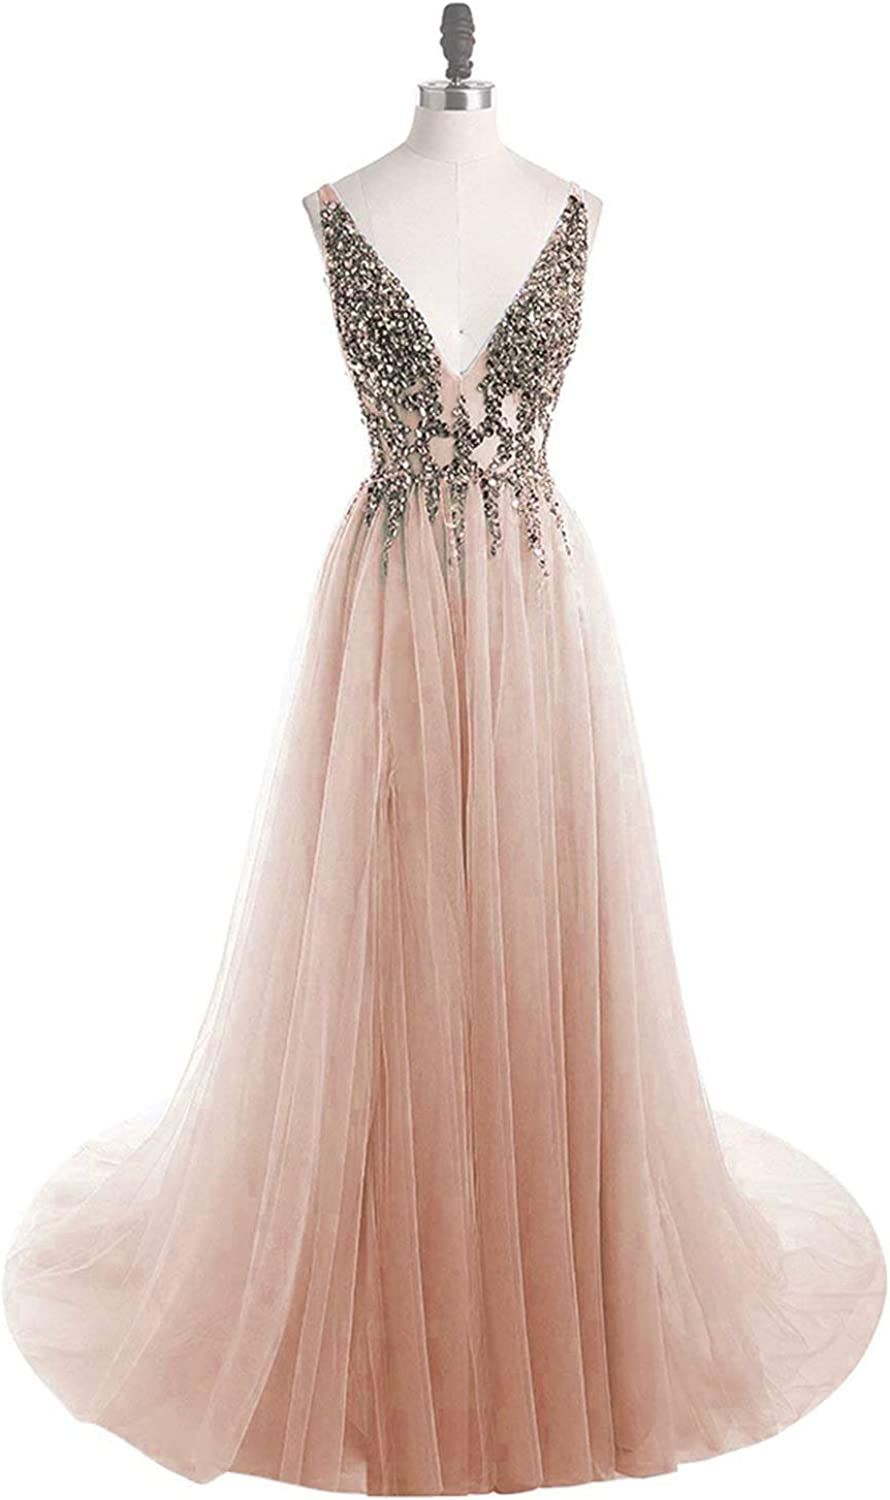 Vimans Deep V Neck Tulle Prom Dresses 2019 Long Sequined Formal Evening Gown P02